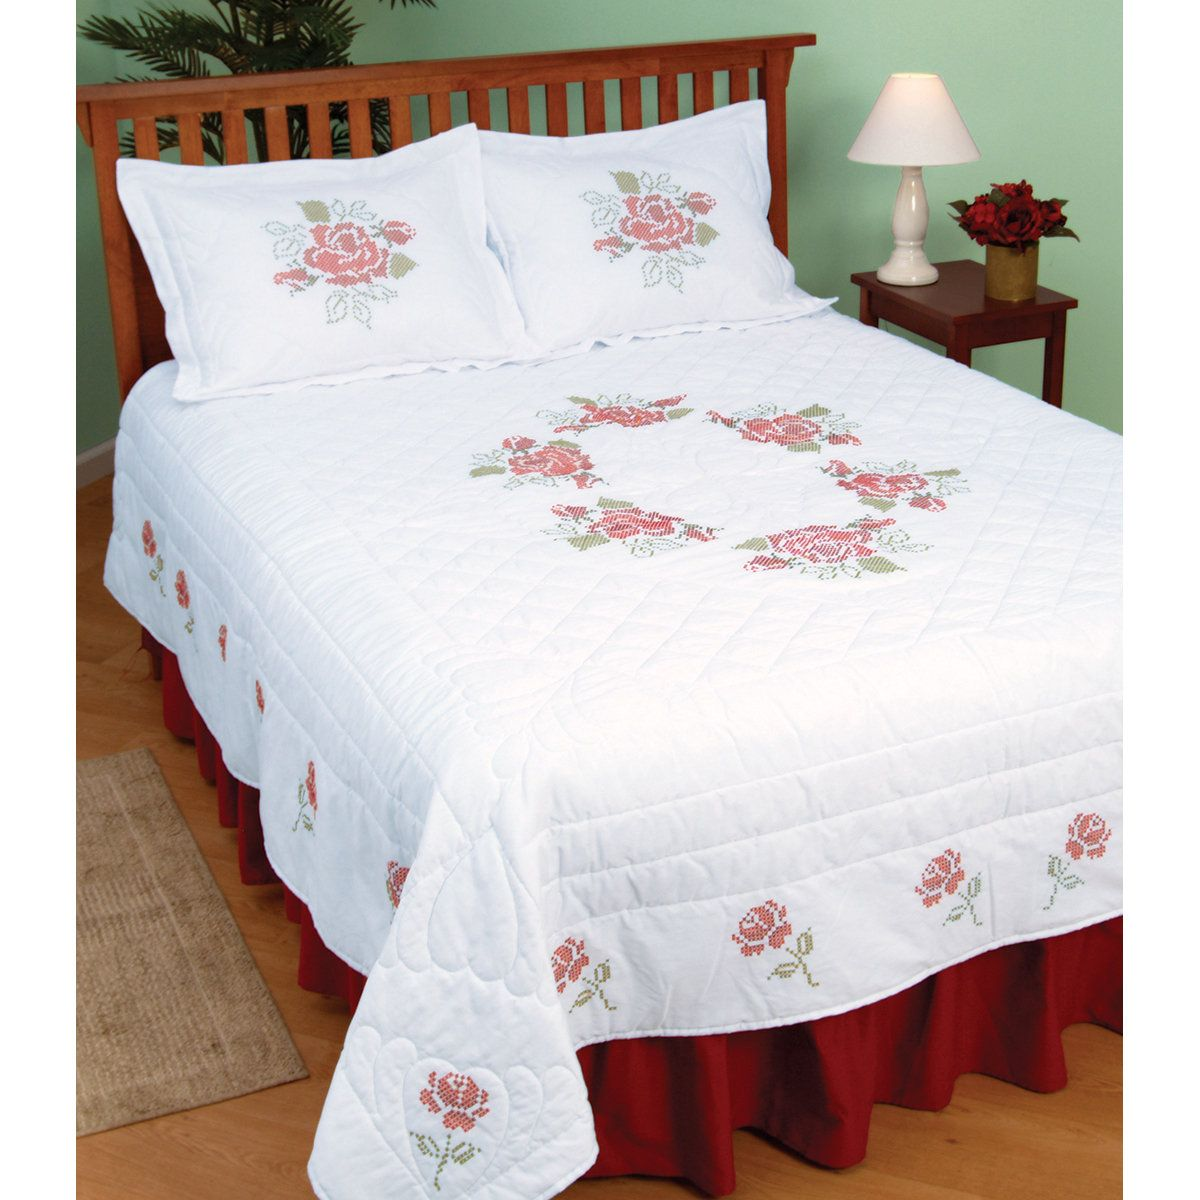 Stamped White Quilt Top -XX Roses   Overstock.com Shopping - The Best Deals on Quilting Kits